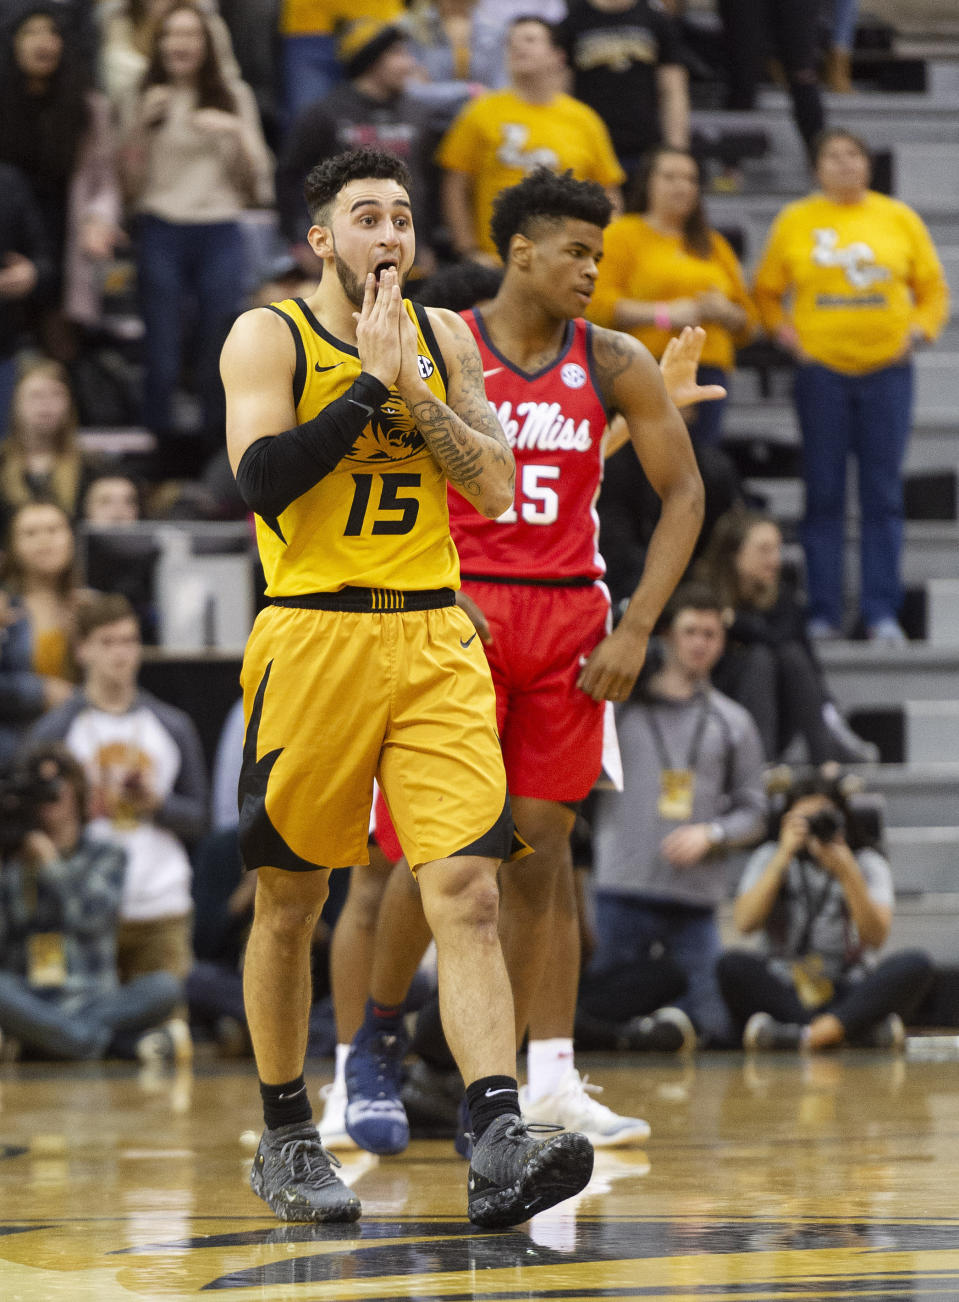 Missouri's Jordan Geist, left, reacts after getting a foul called on him in front of Mississippi's Luis Rodriguez, right, during the first half of an NCAA college basketball game Saturday, March 9, 2019, in Columbia, Mo. (AP Photo/L.G. Patterson)